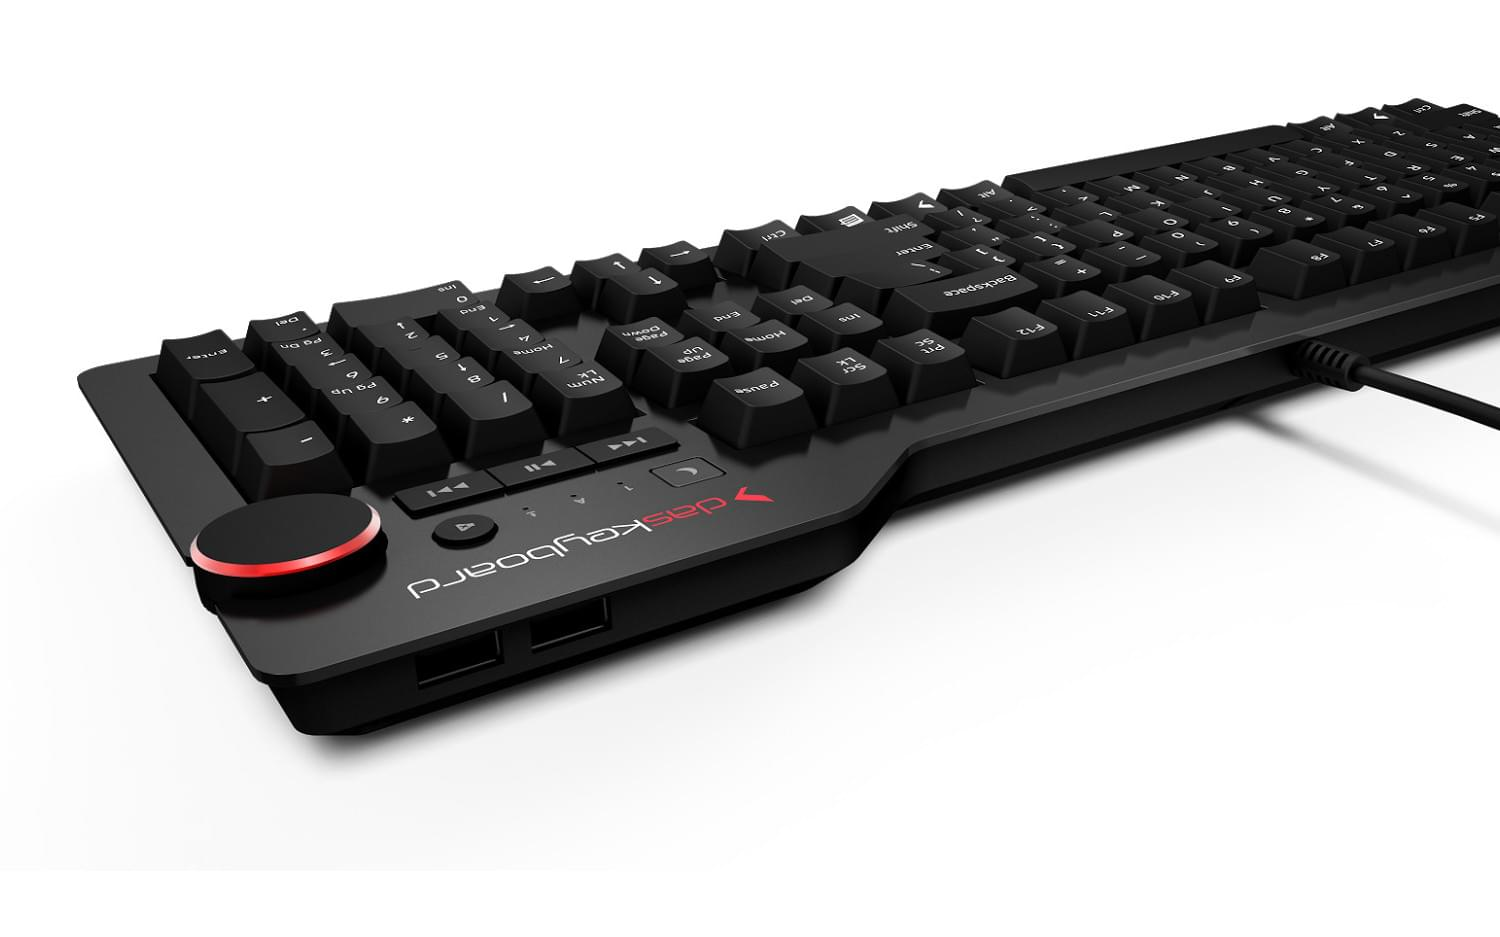 Das Keyboard 4 Professional Mechanical Keyboard